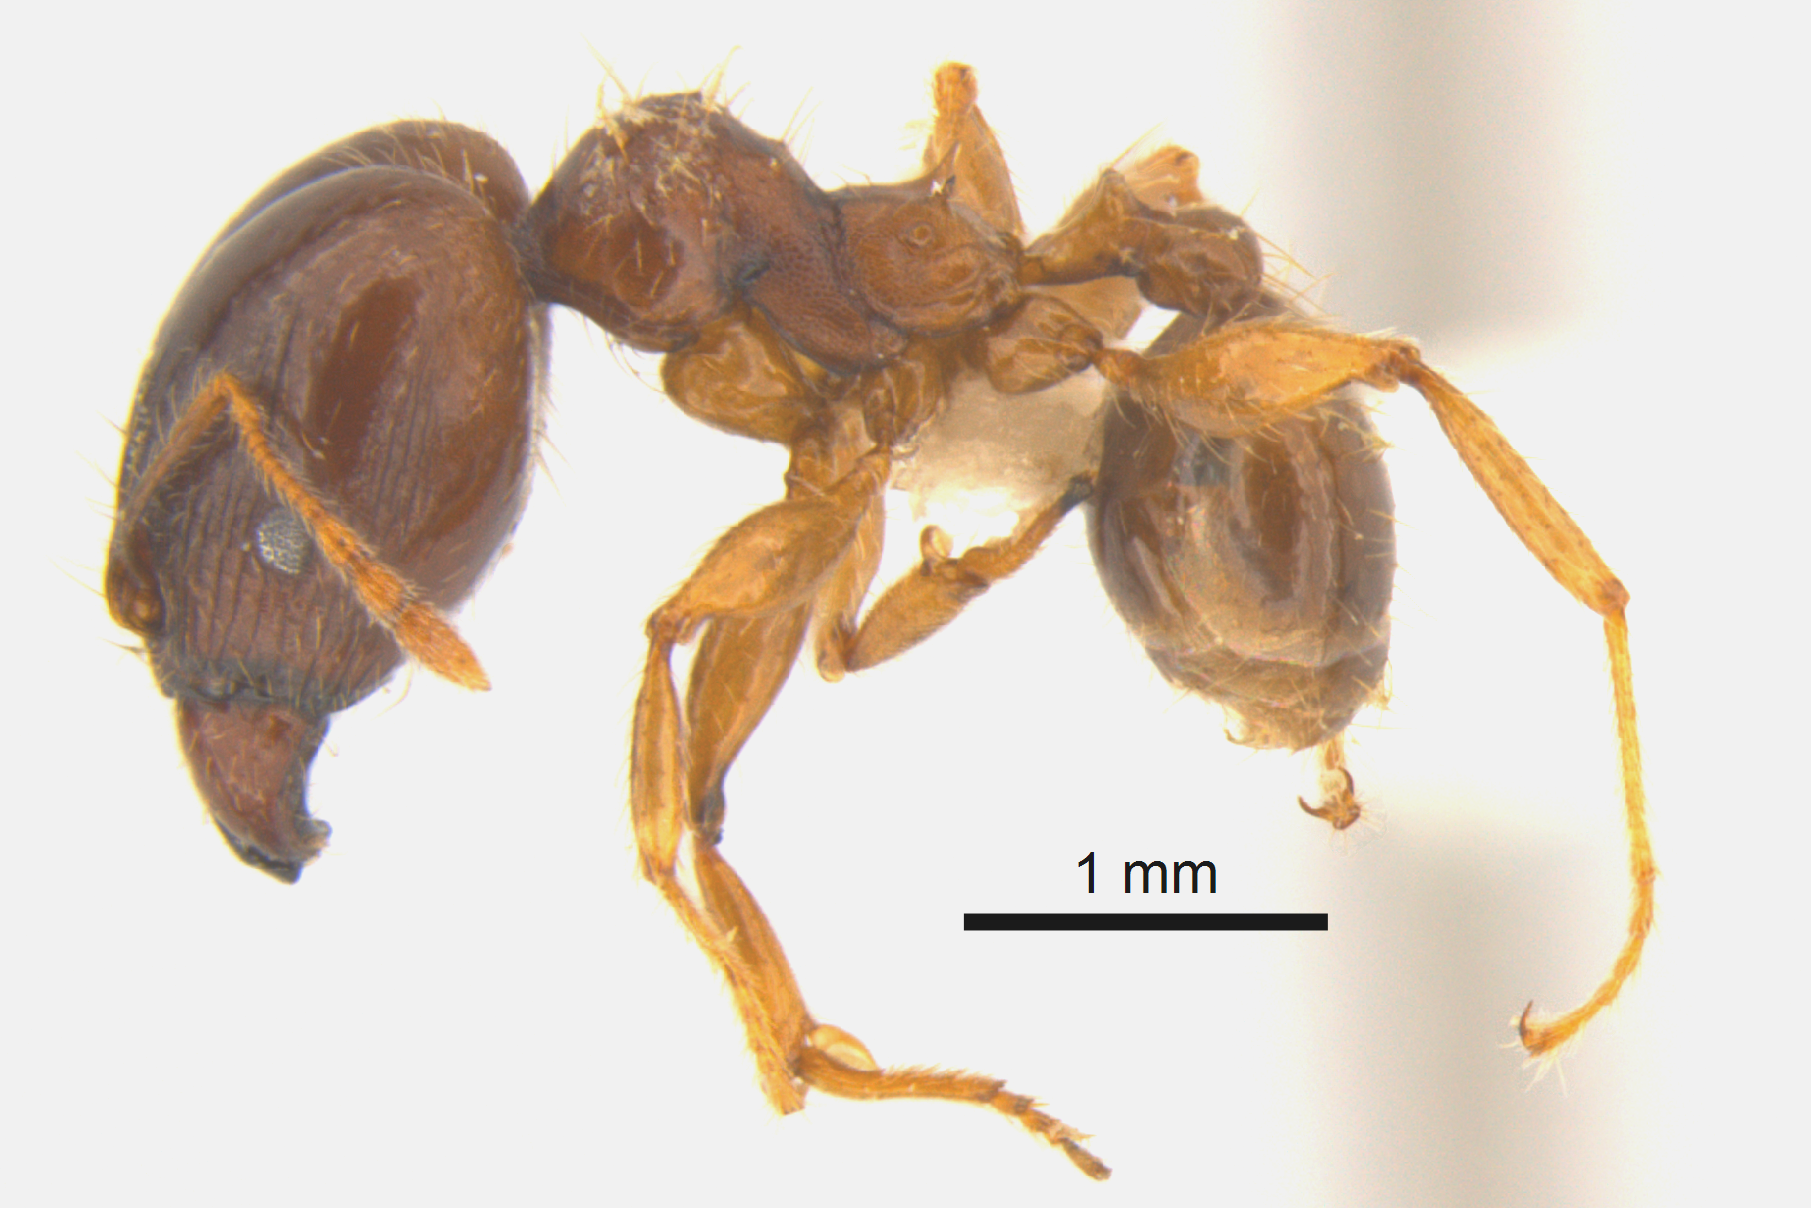 Pinned specimen of an African bigheaded ant.